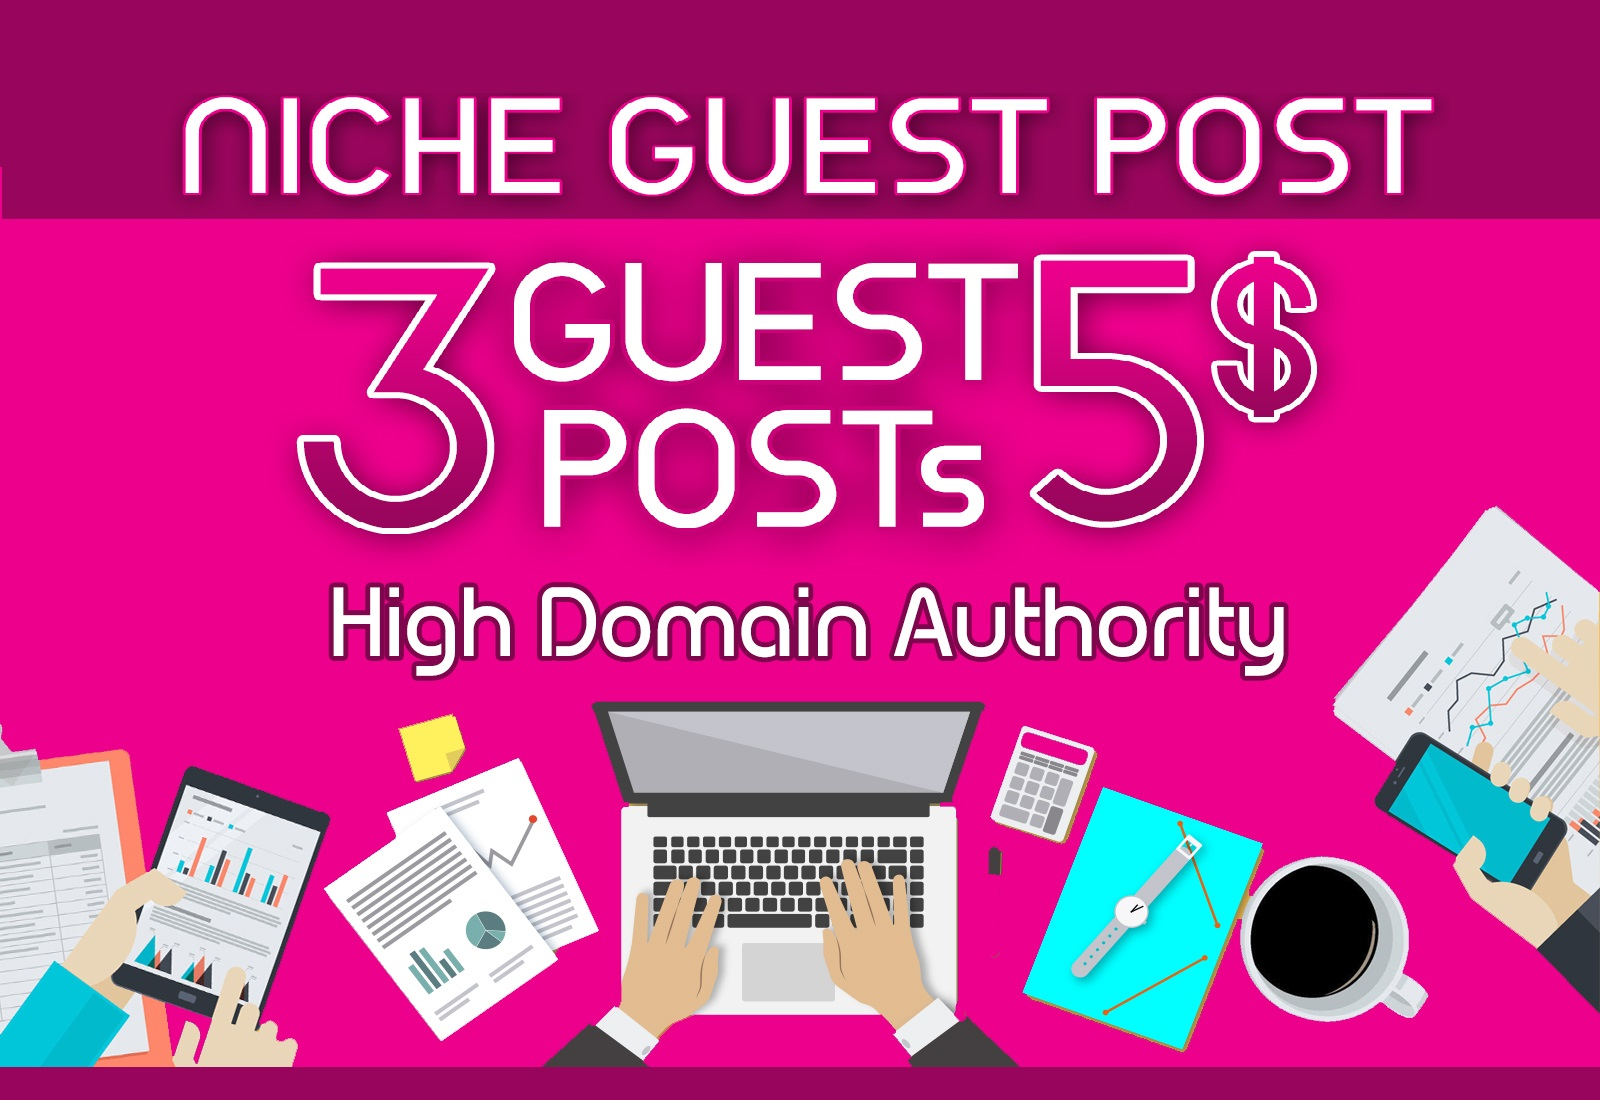 write and publish 3 niche guest post on DA90+ authority sites